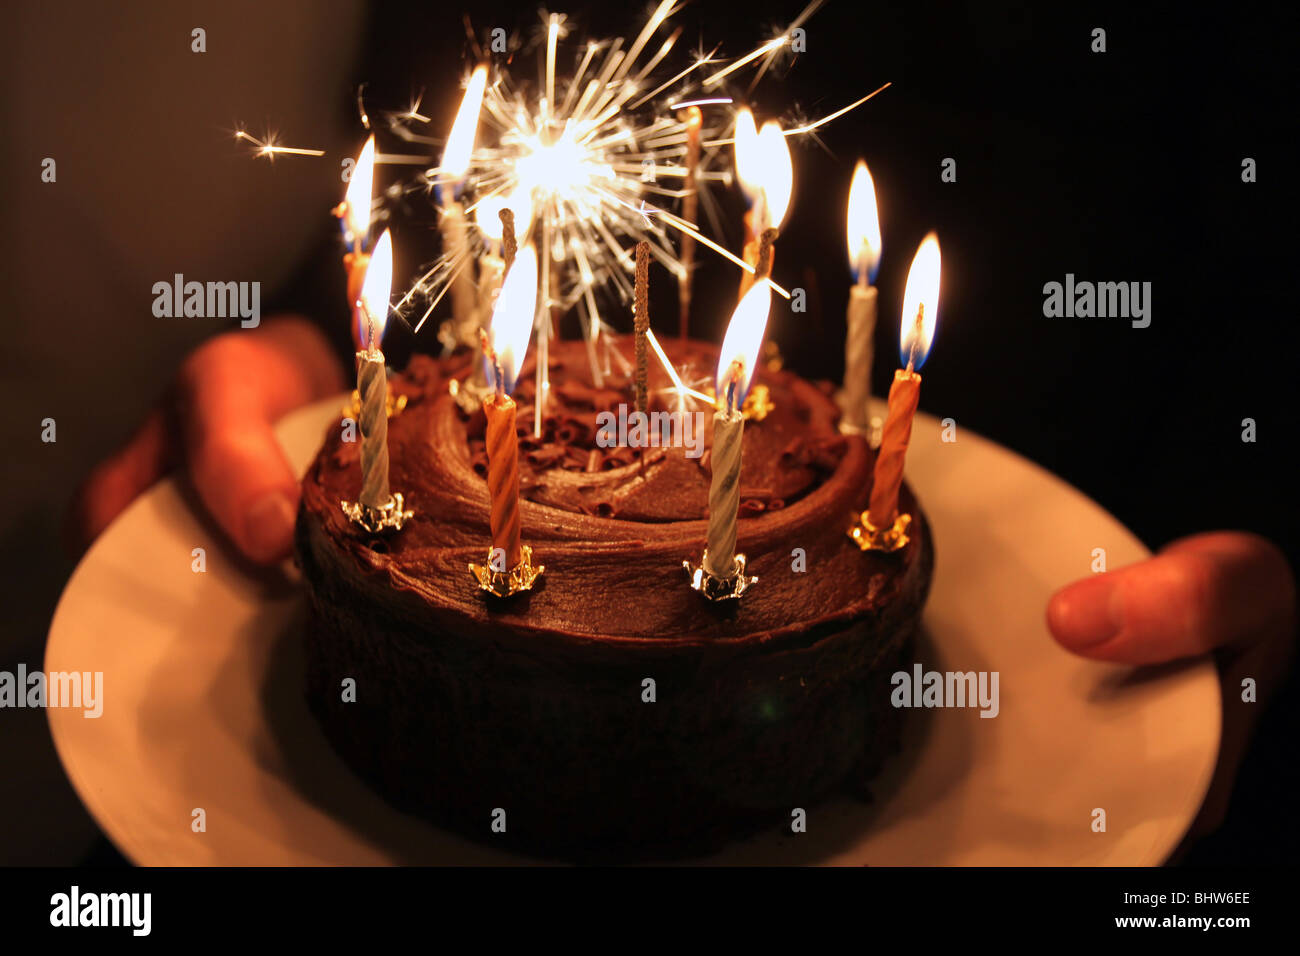 Astounding Cake Sparklers Stock Photos Cake Sparklers Stock Images Alamy Funny Birthday Cards Online Alyptdamsfinfo